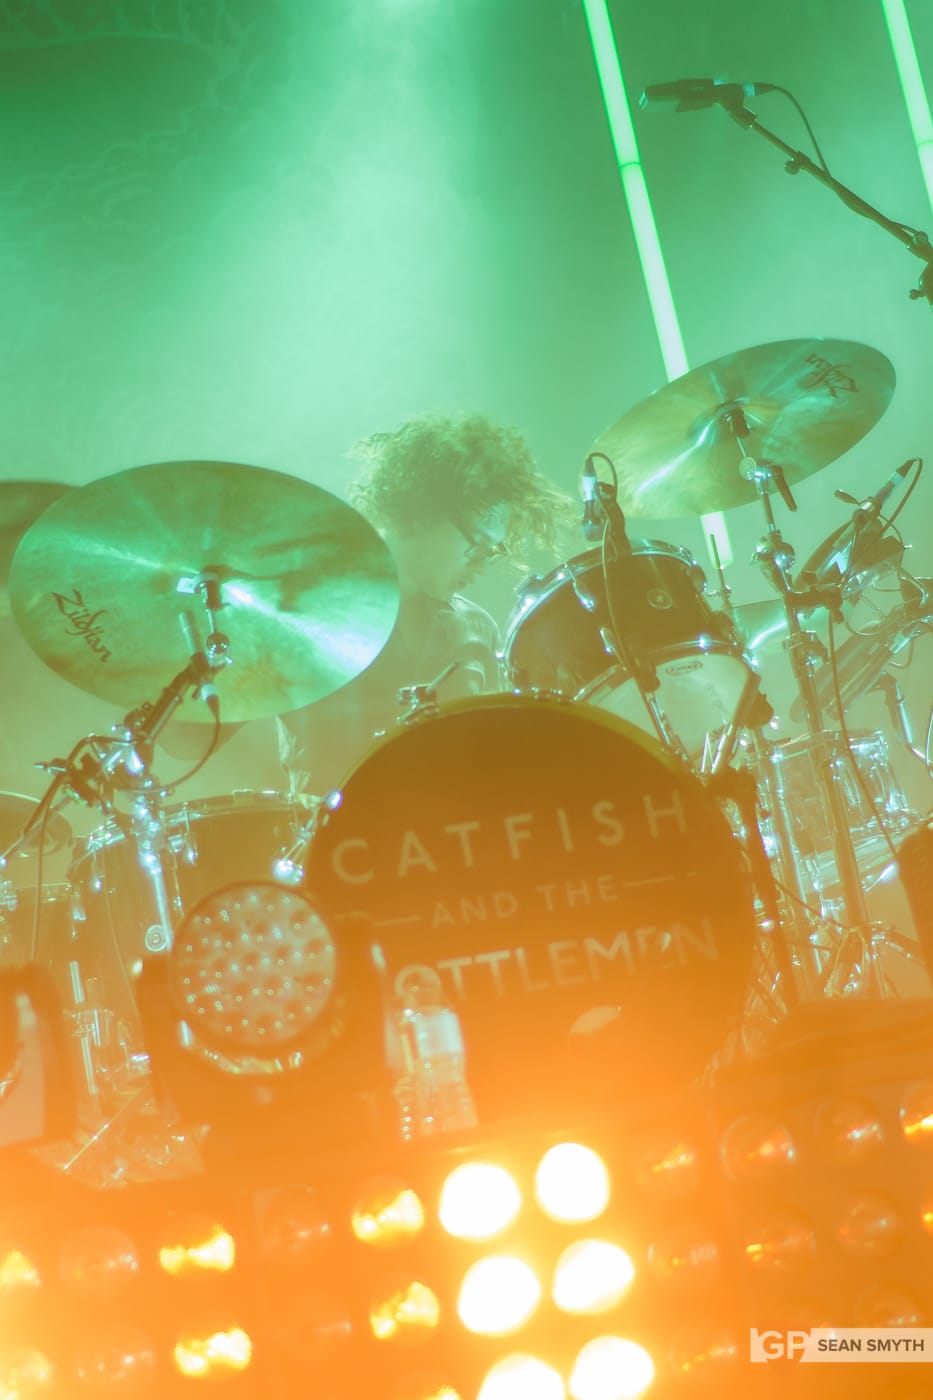 catfish-and-the-bottlemen-at-the-olympia-theatre-by-sean-smyth-20-11-16-14-of-27